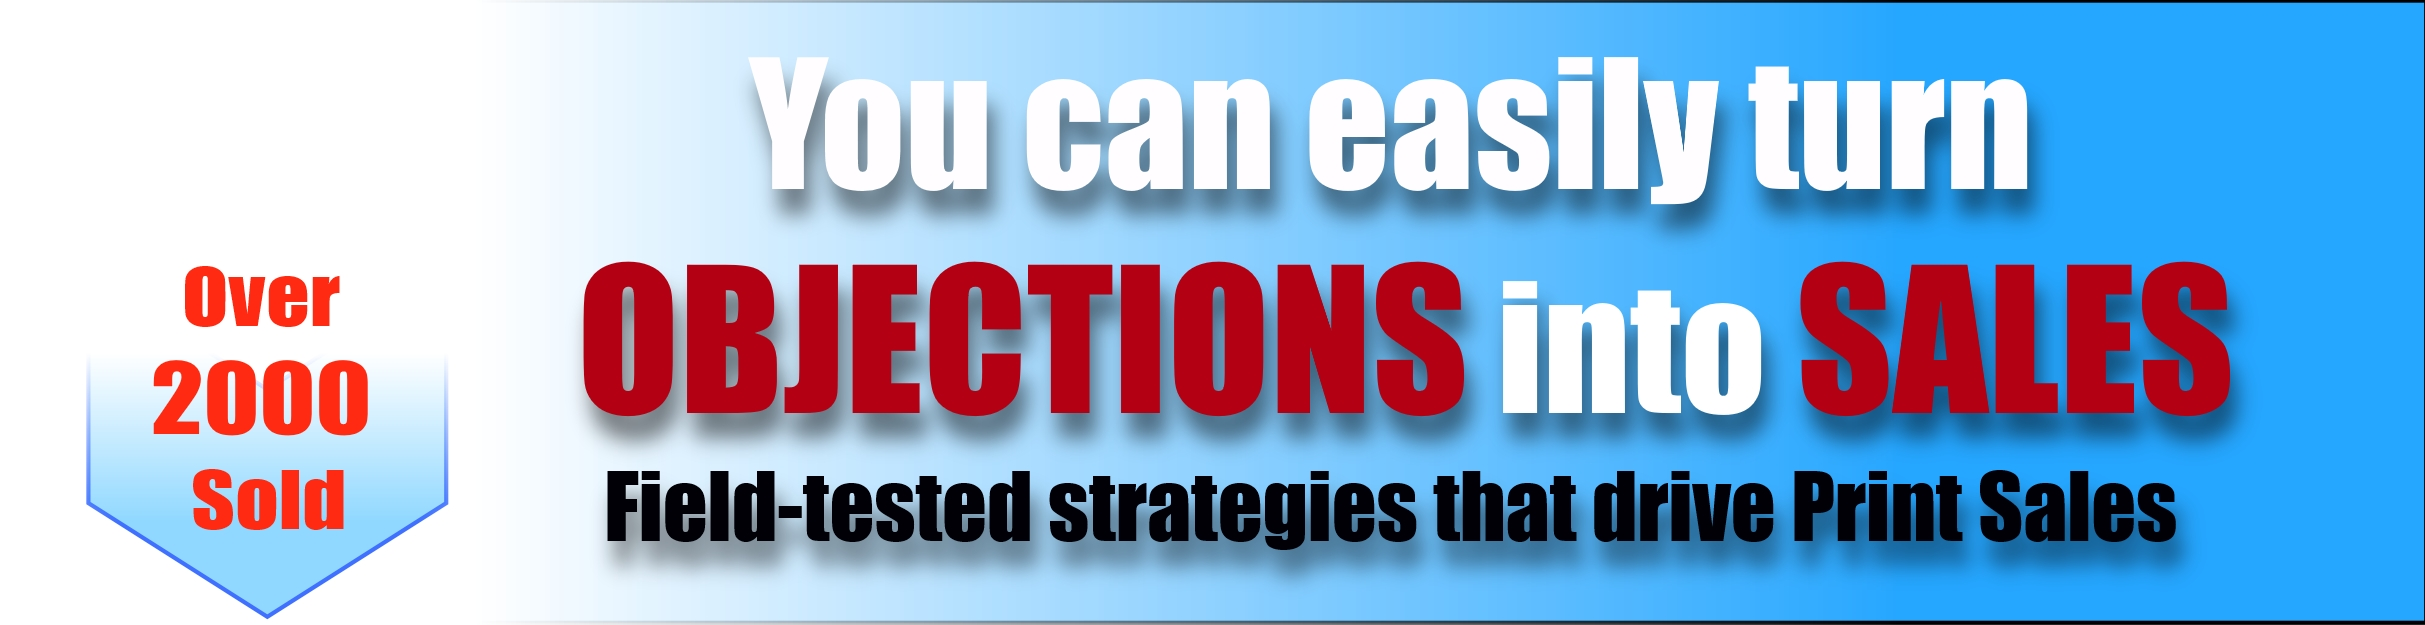 Turn objections into sales